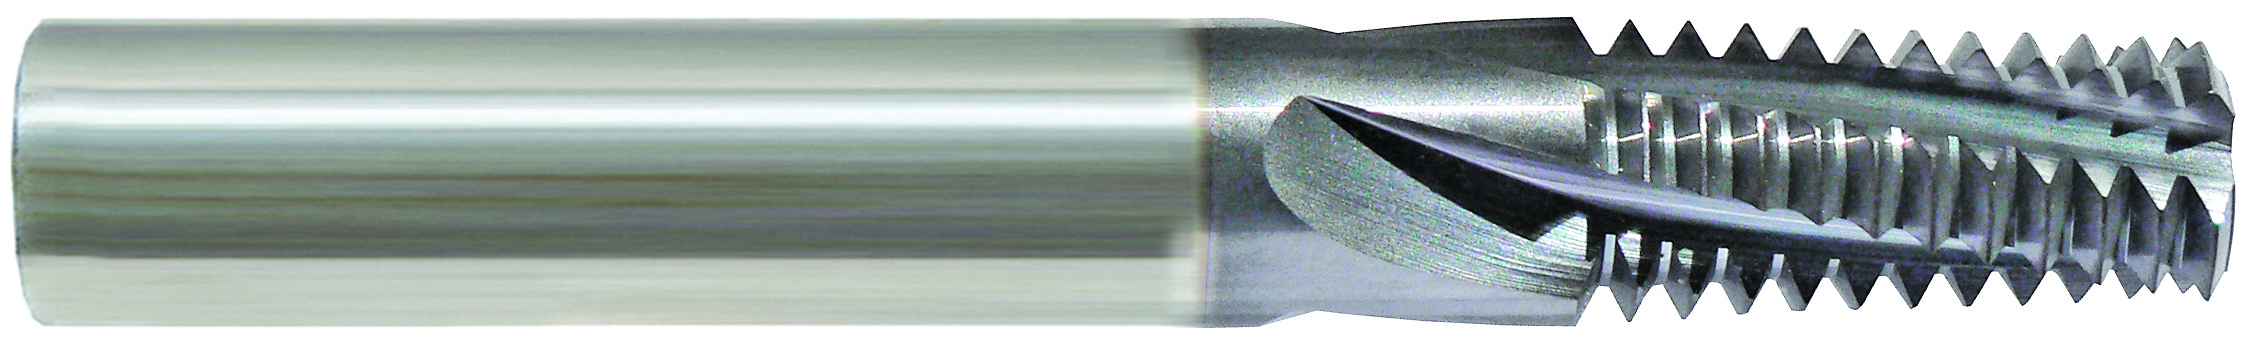 M14-2.00 MC SOLID CARBIDE THREAD MILL